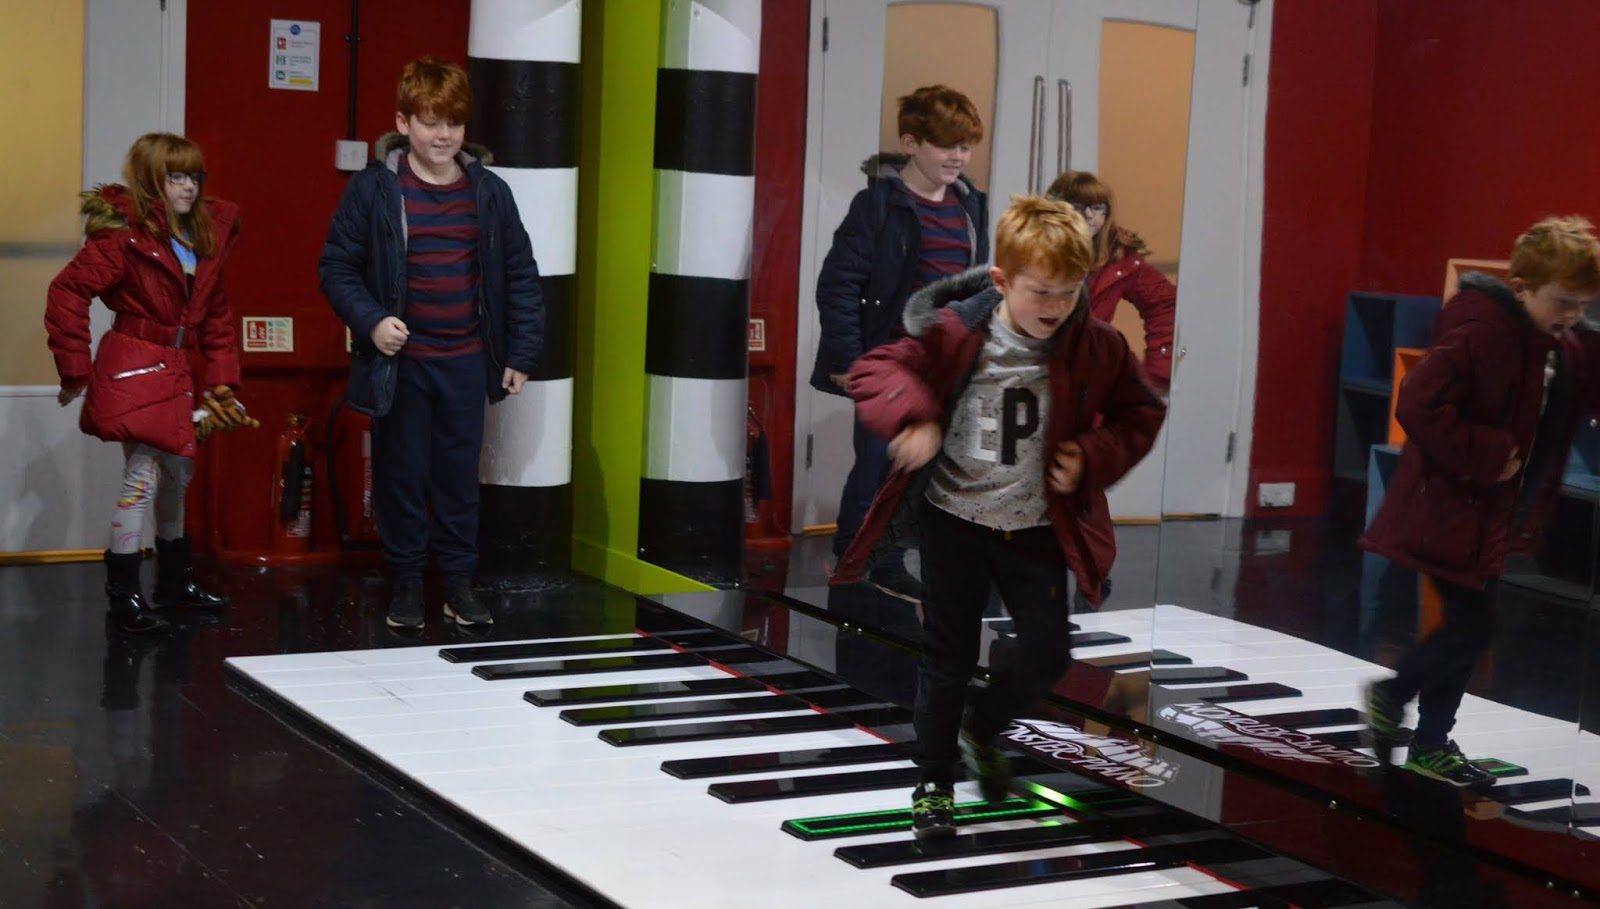 How to Spend 24 Hours in Liverpool with Tweens - Beatles Experience Piano